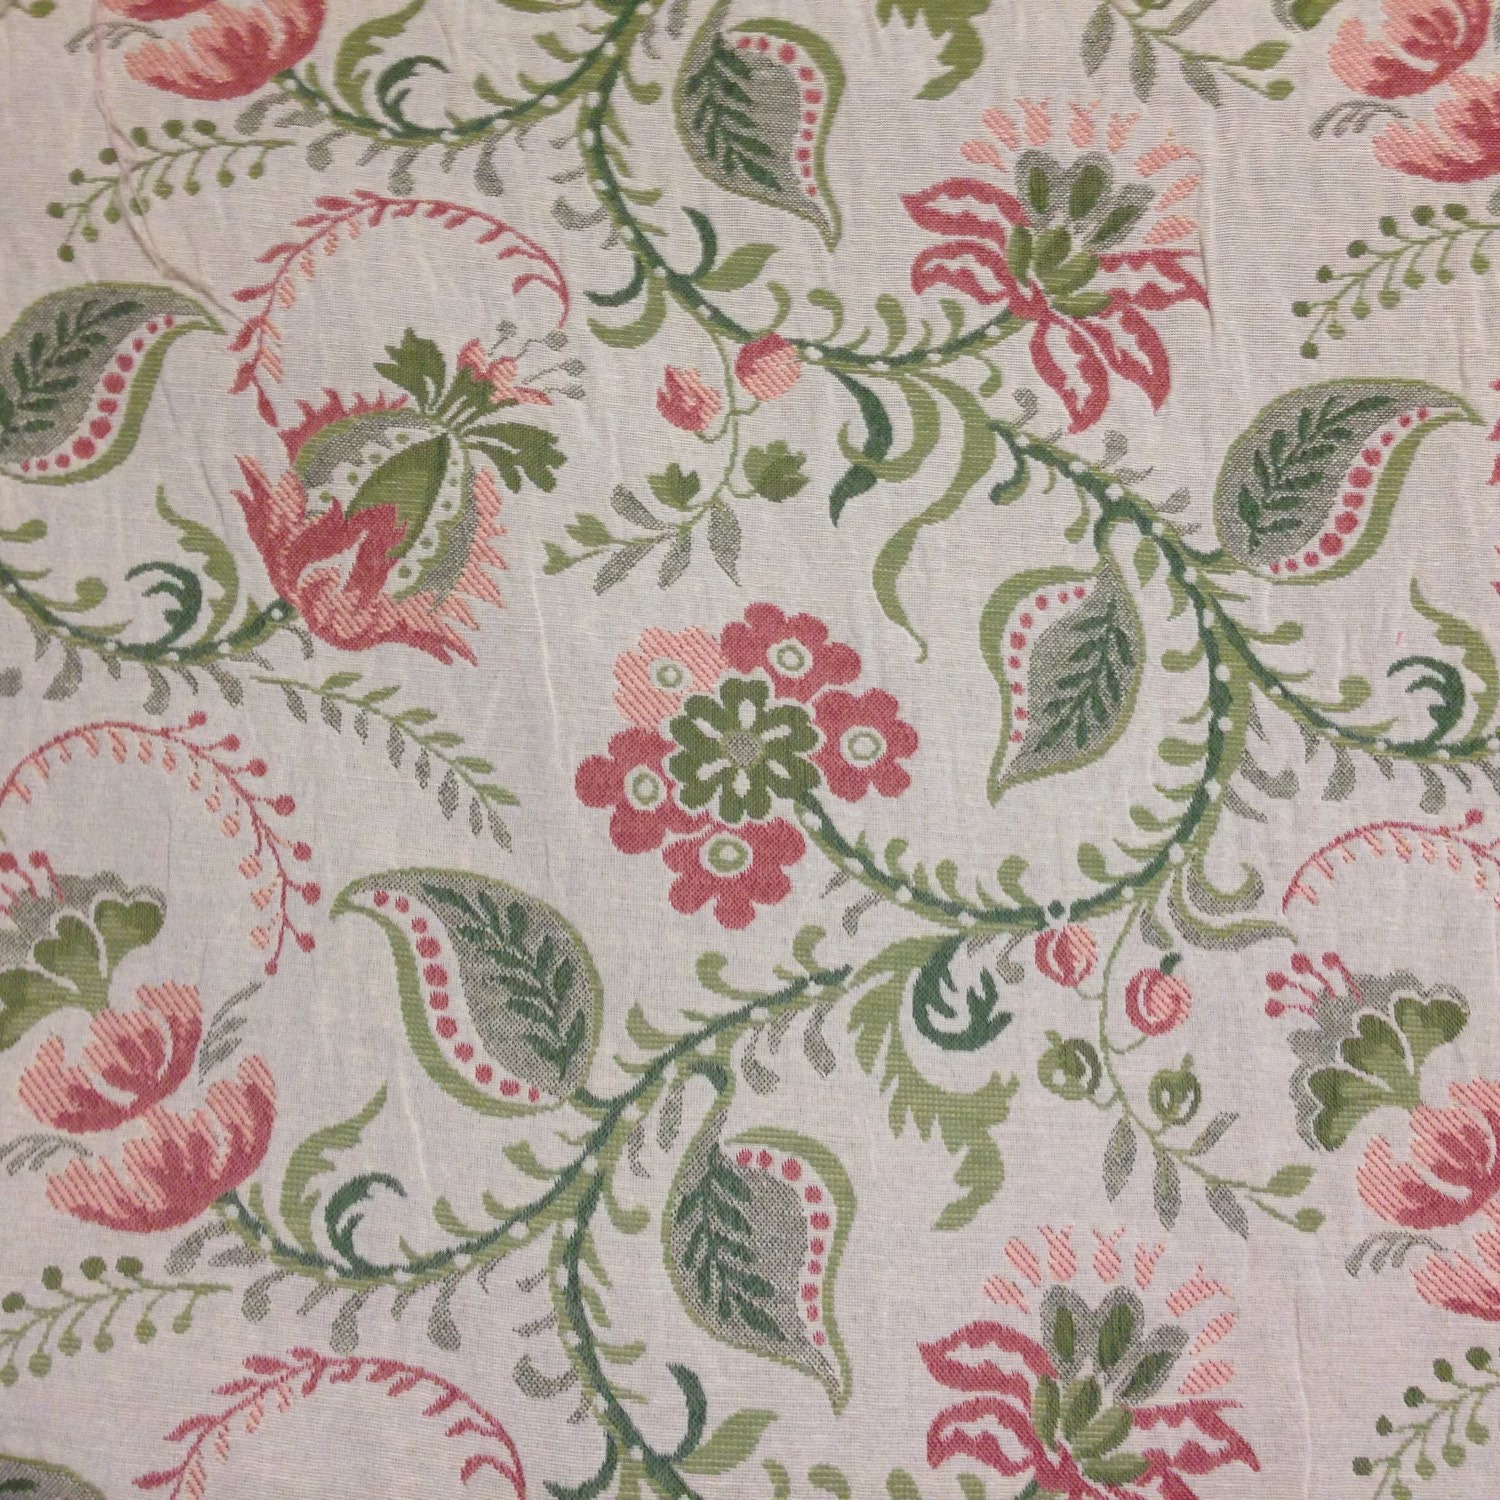 FABRIC SALE Jacobean Fabric Upholstery Fabric By The